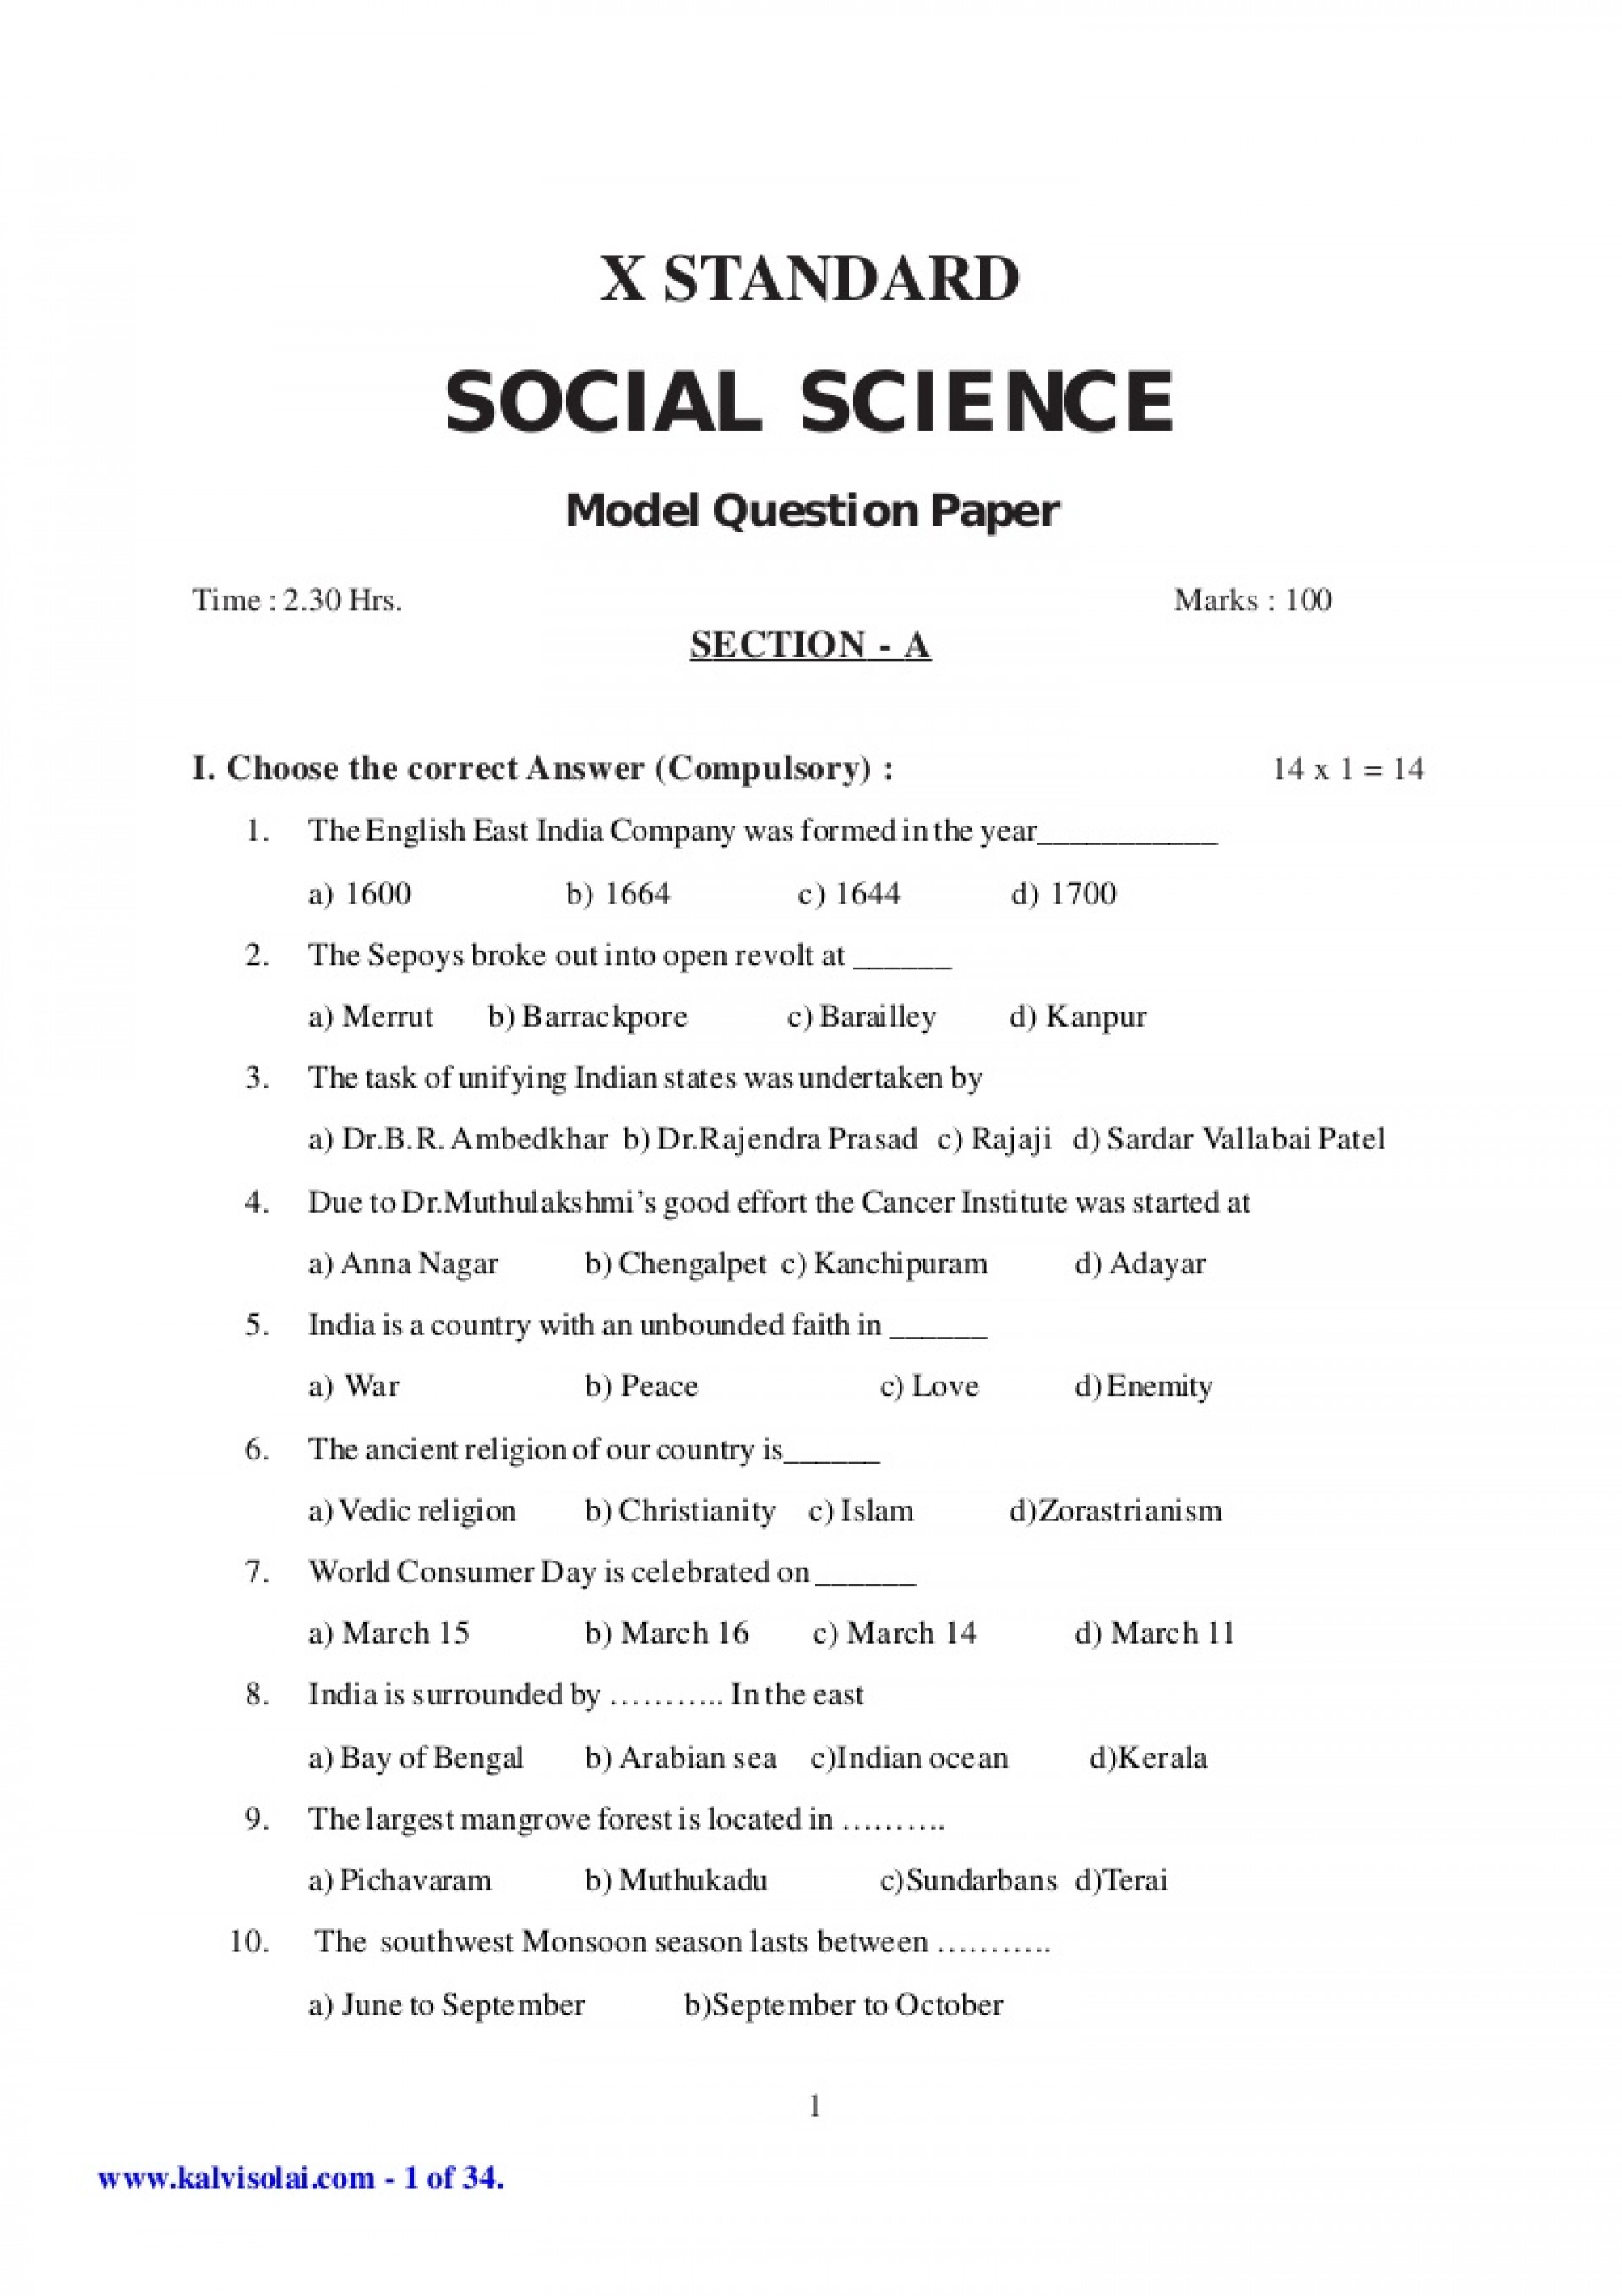 001 Sslc Social Model Question Papers English Medium Phpapp01 Thumbnail Essay Example On Importance Of Rare Science 1920